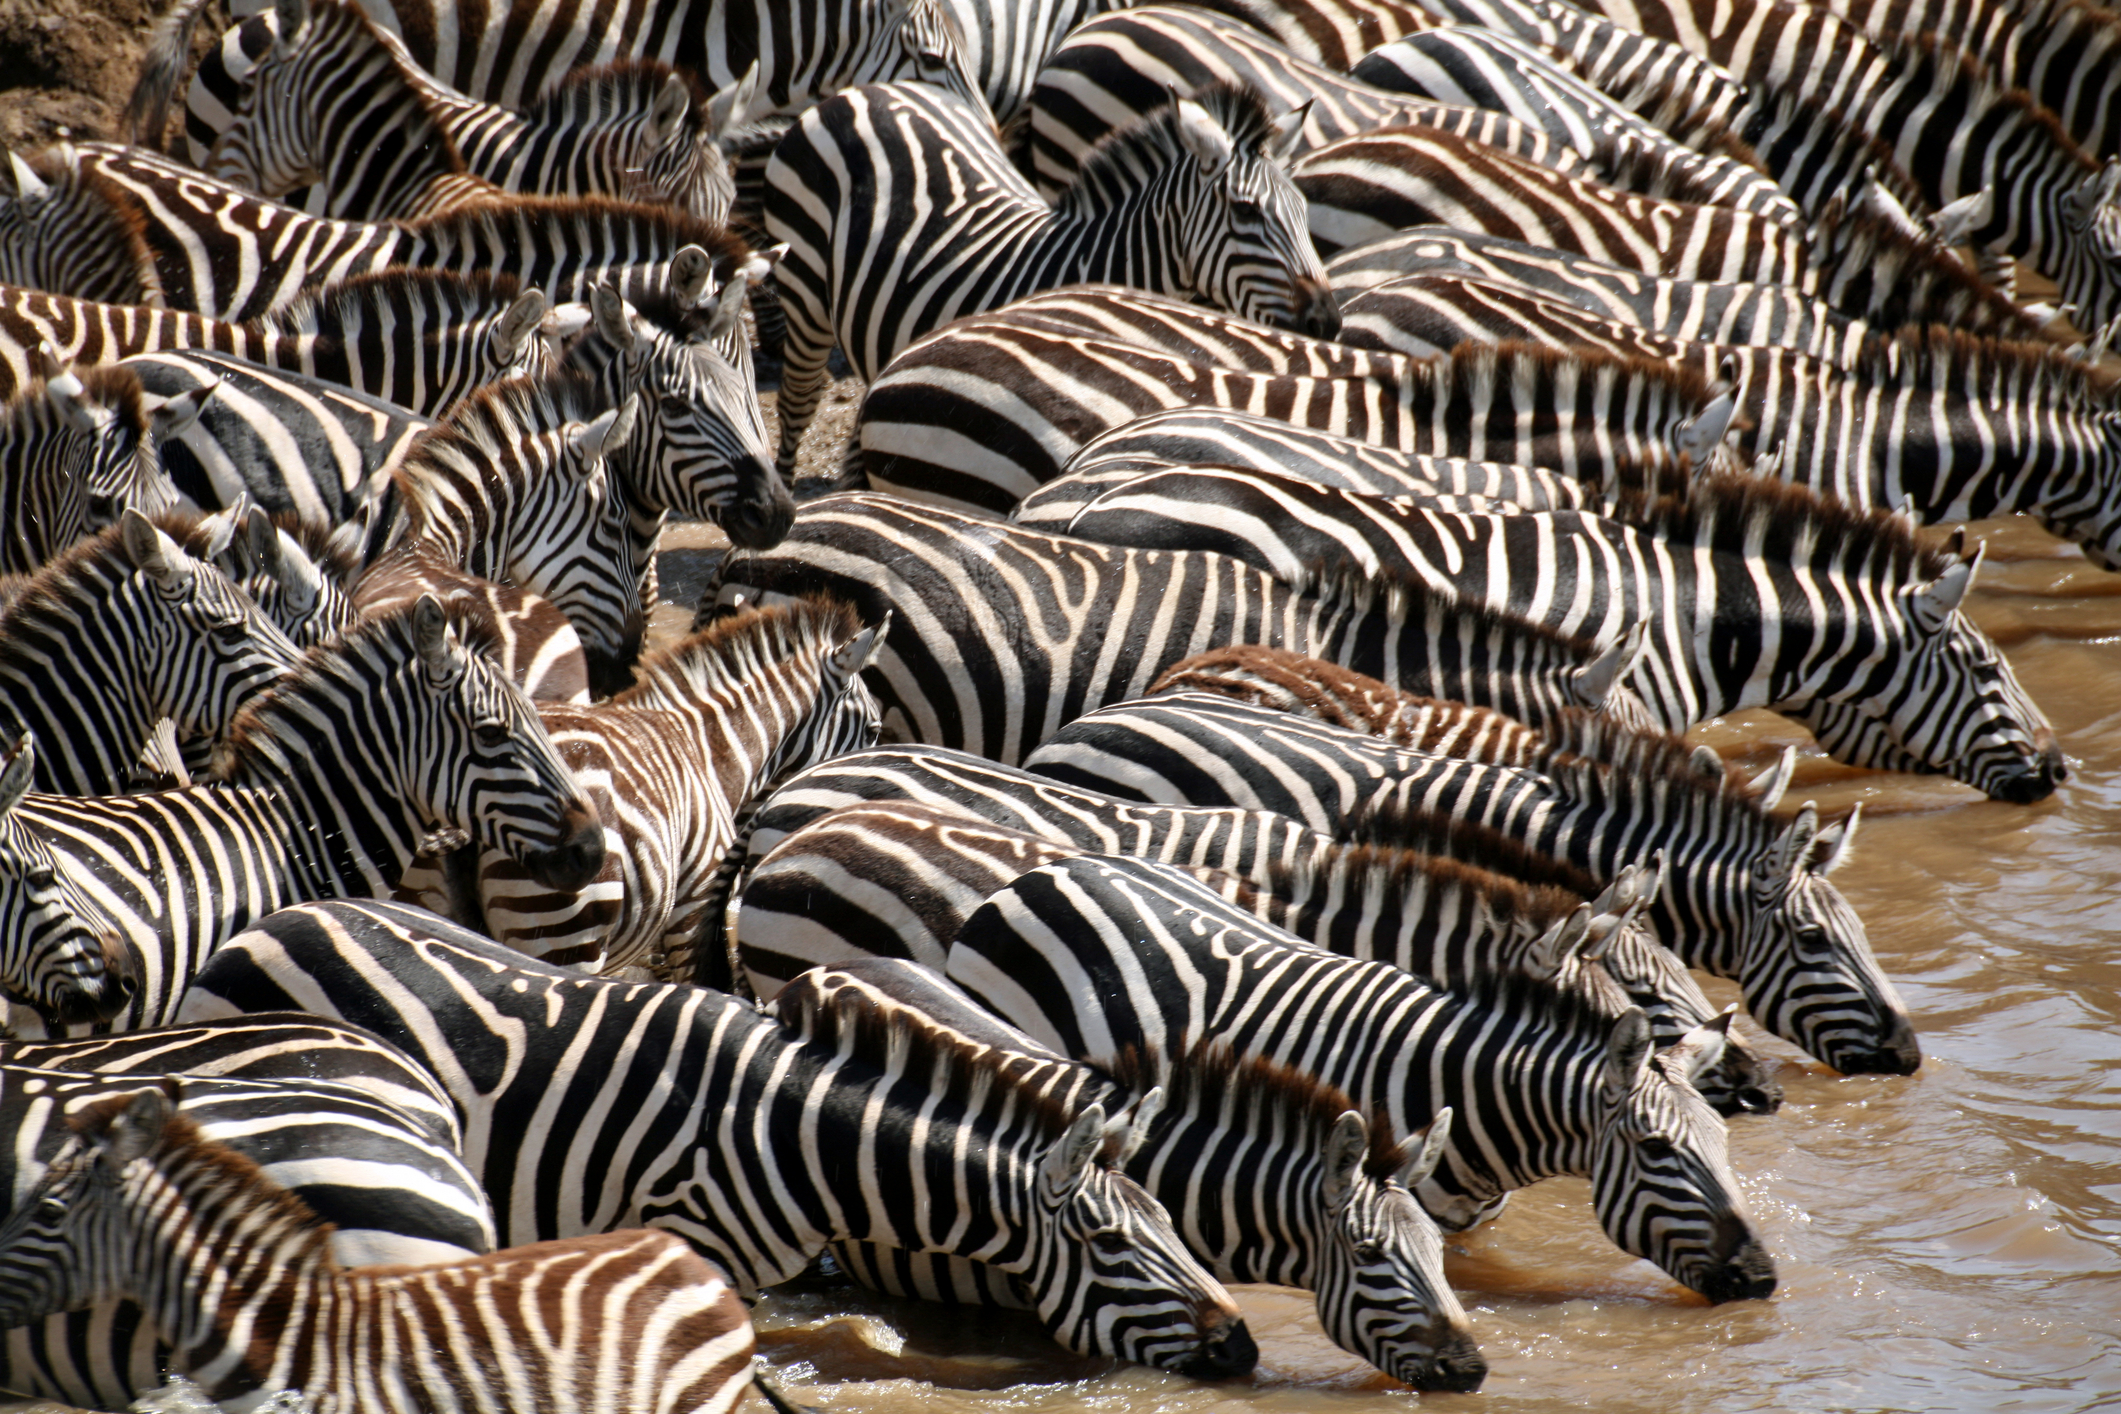 Zebra group drinking.jpg